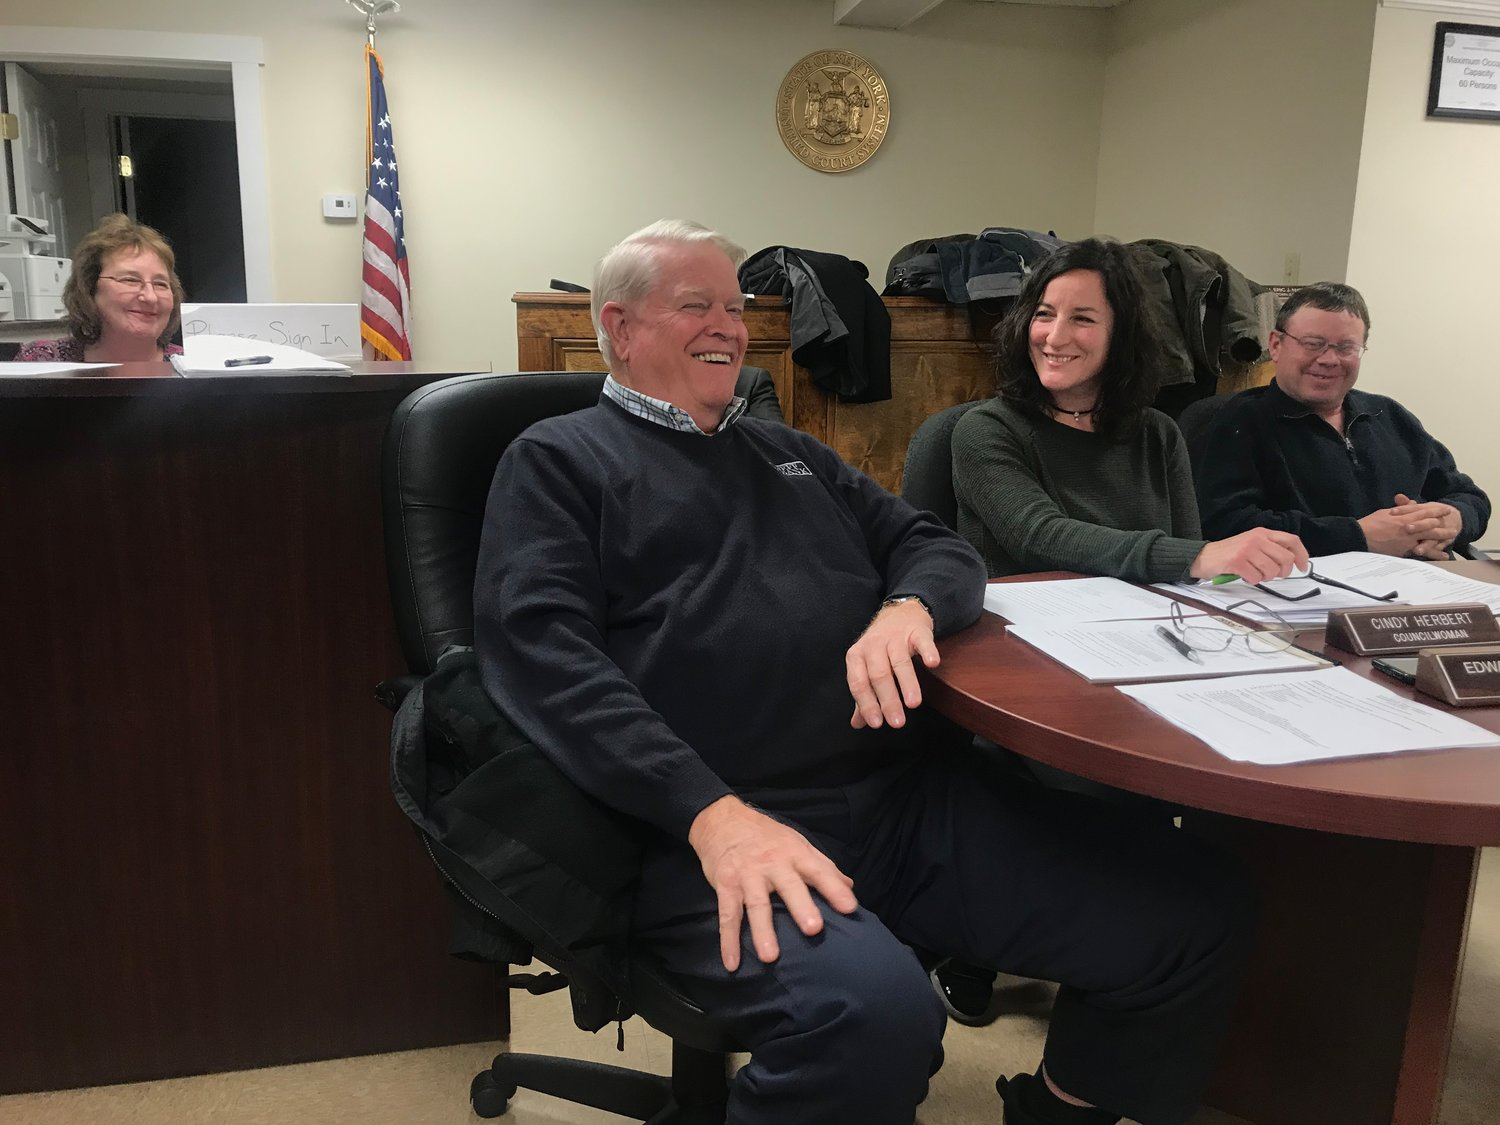 Ed Sykes shares a final laugh with Town Clerk Tess McBeath, left, councilwoman Cindy Herbert, right, and councilman Christopher Hermann.